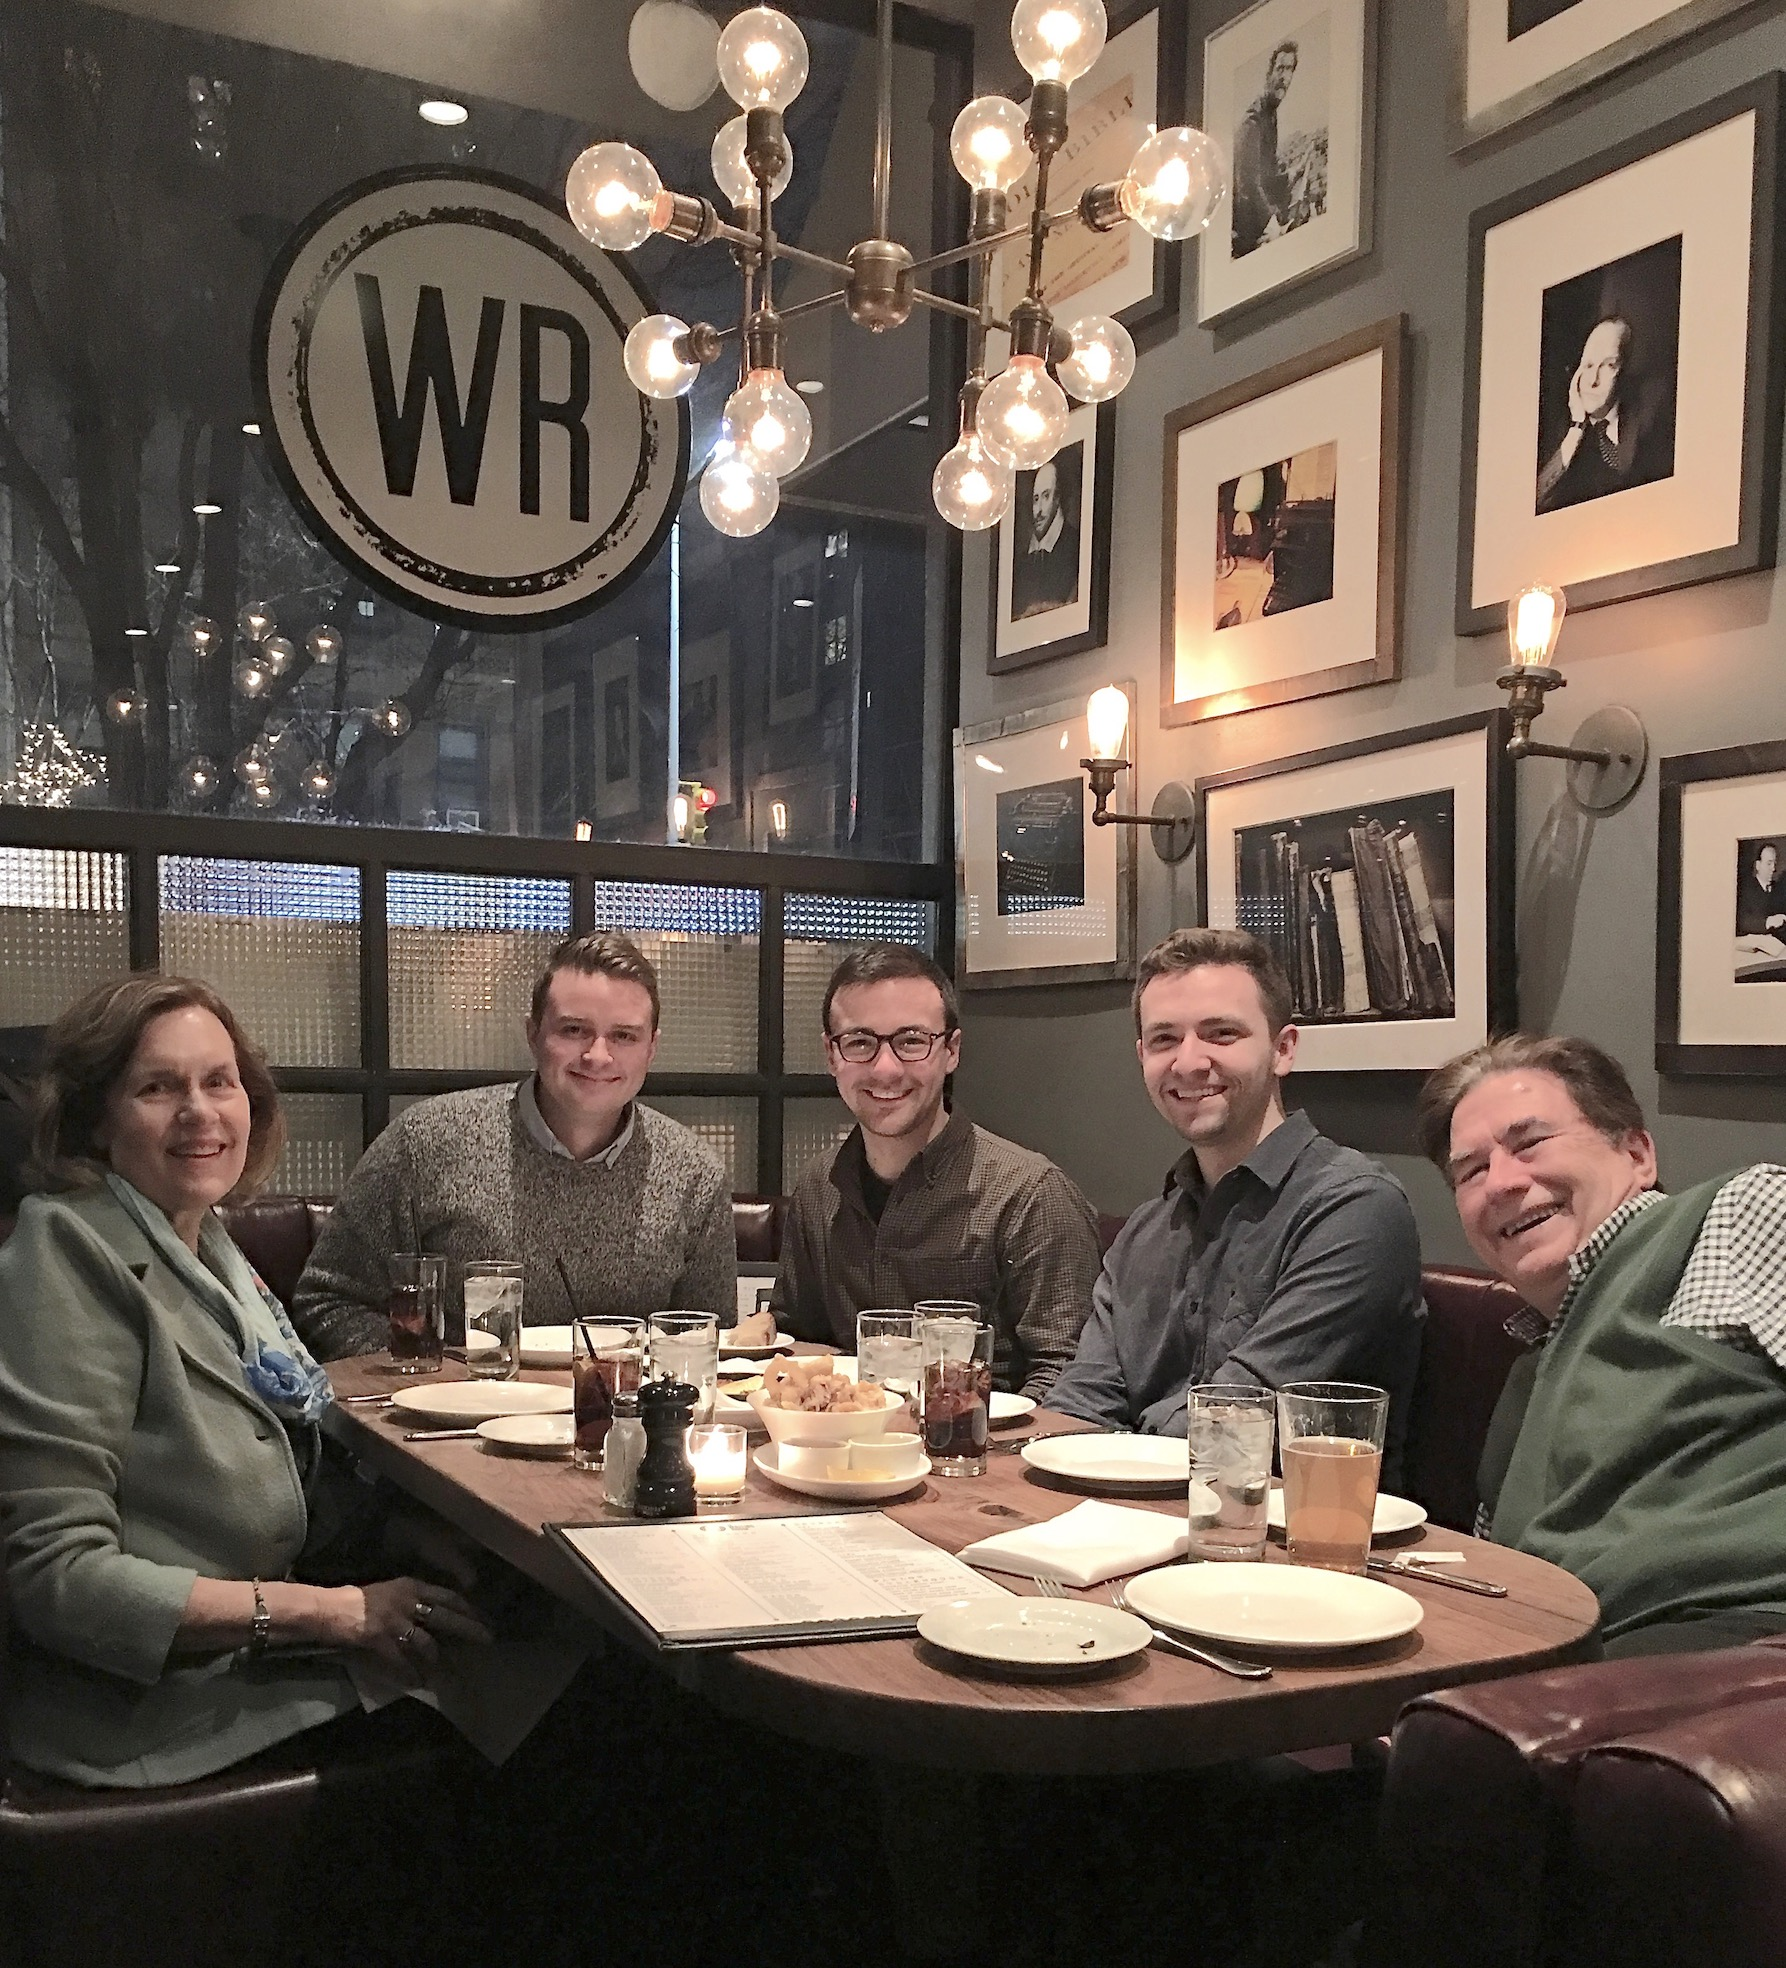 Lorraine, a cousin, Trevan S. , Collin, & John at dinner, in Manhattan, Feb., 2019